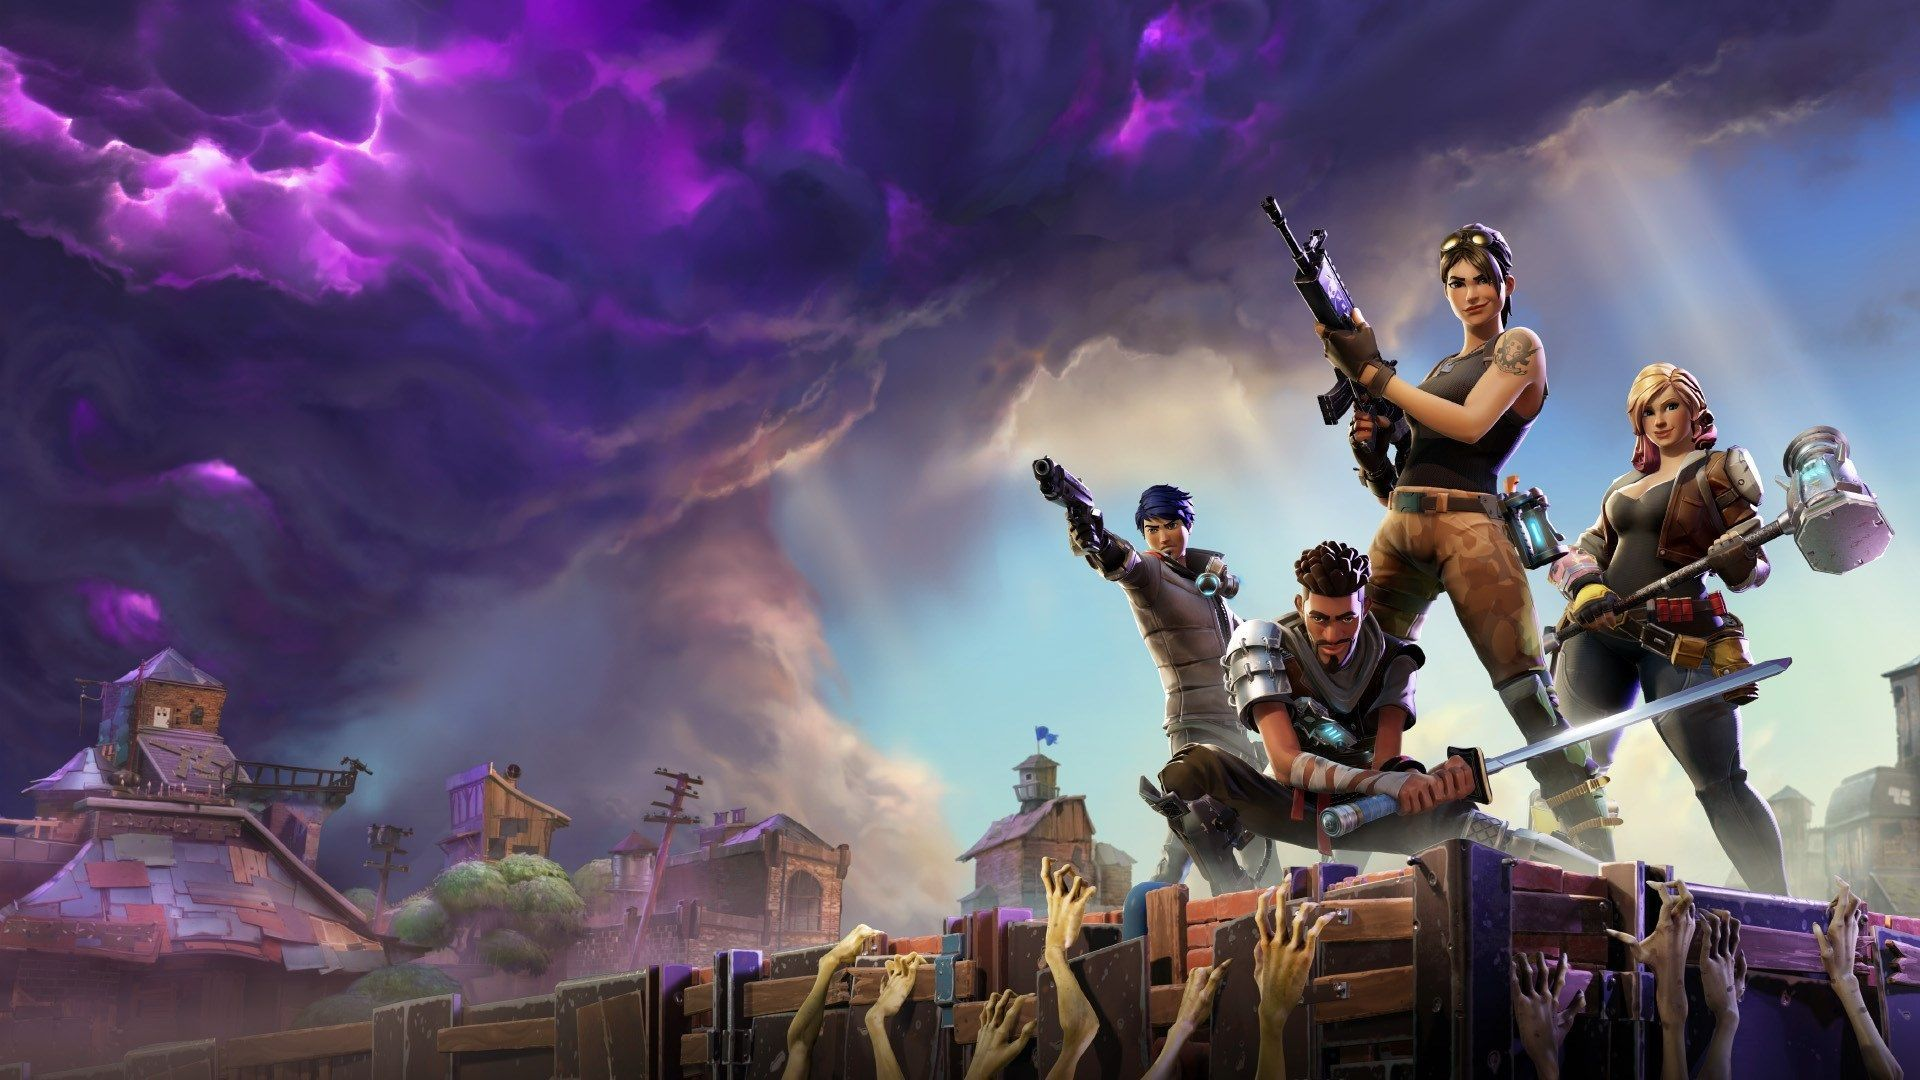 Cool Wallpapers Fortnite For Your Computer